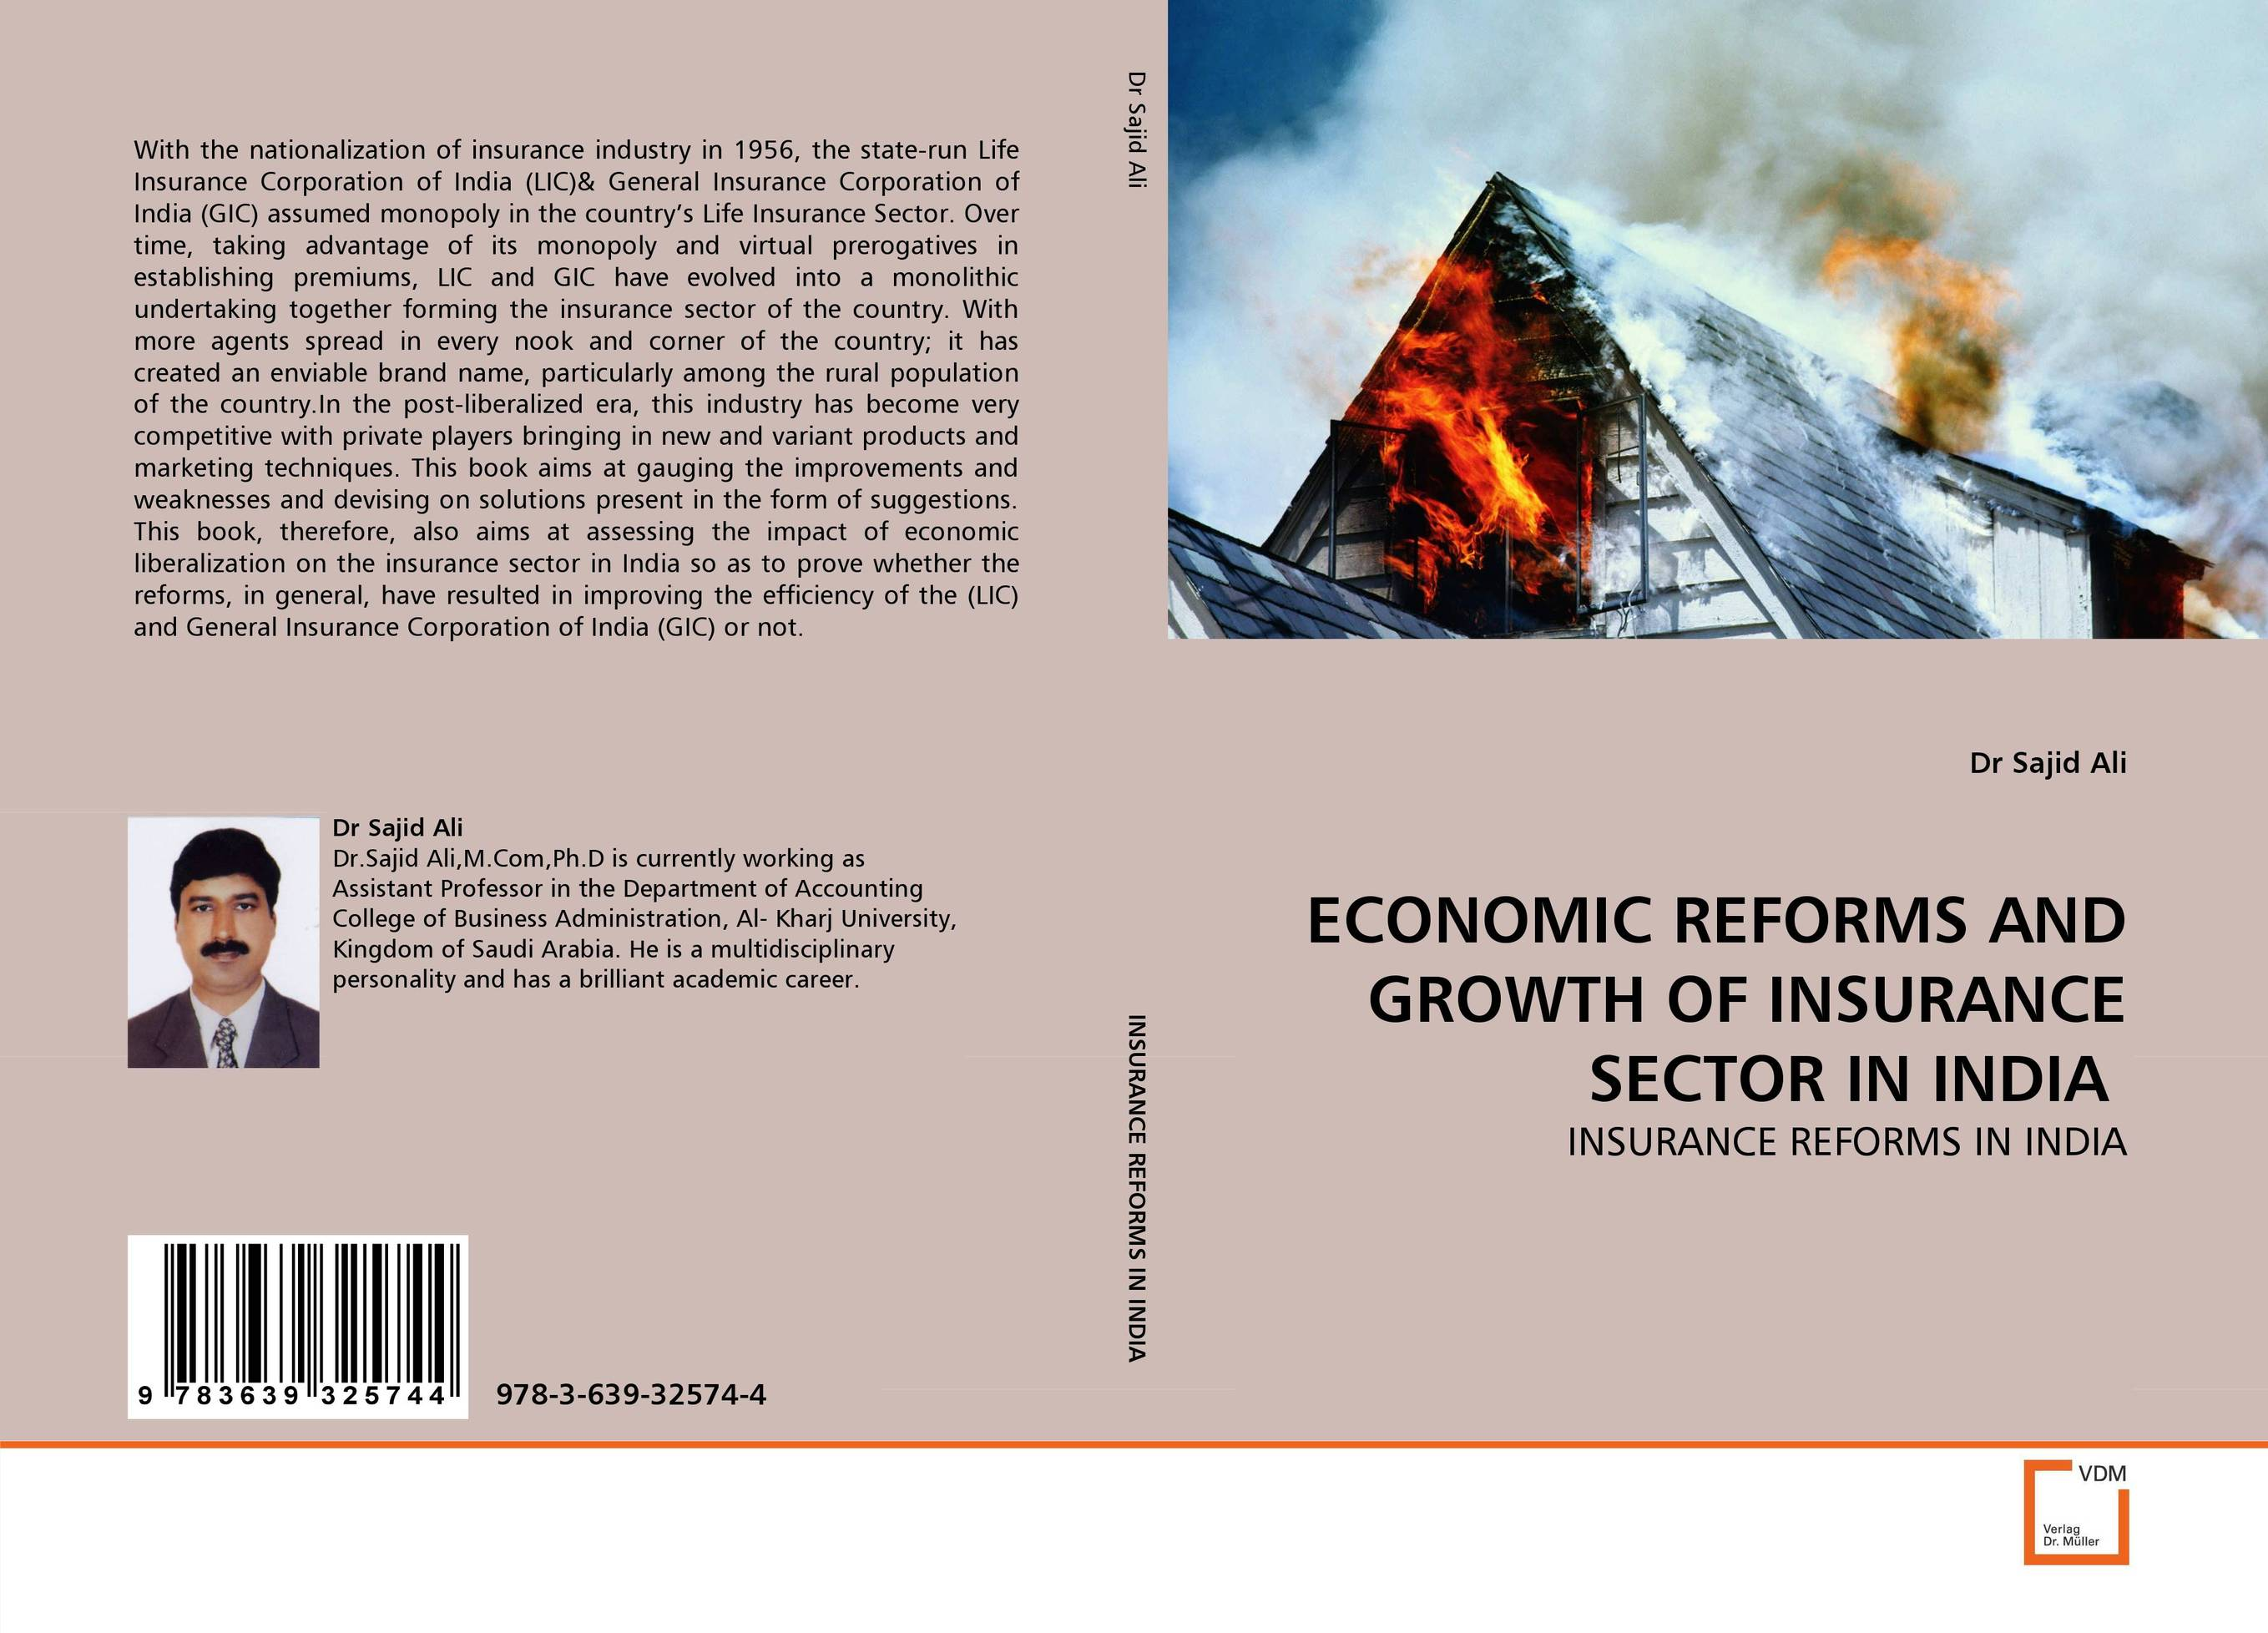 ECONOMIC REFORMS AND GROWTH OF INSURANCE SECTOR IN INDIA ? financial performance analysis of general insurance companies in india